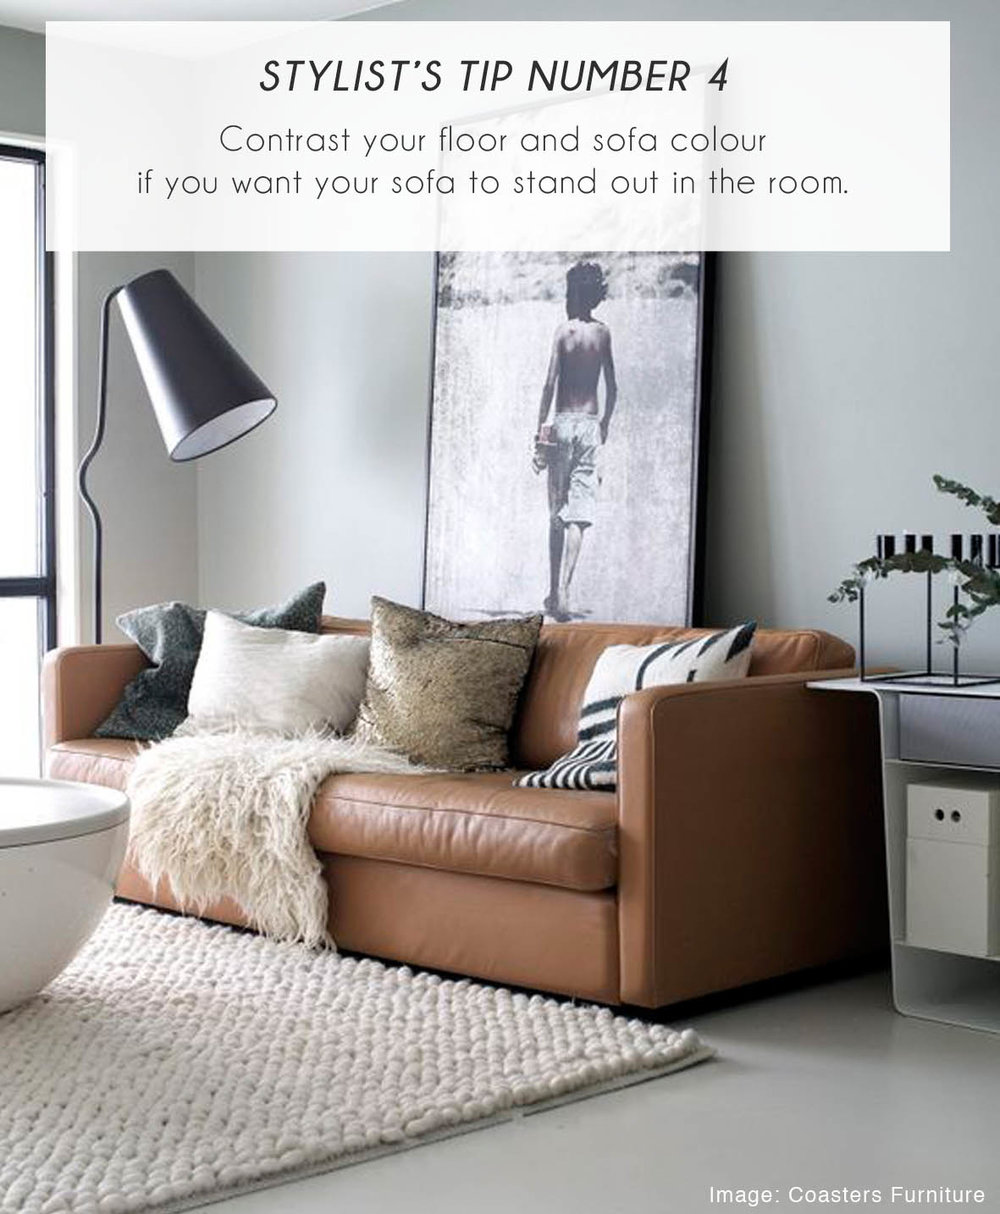 Stylist Tips for sofa 4